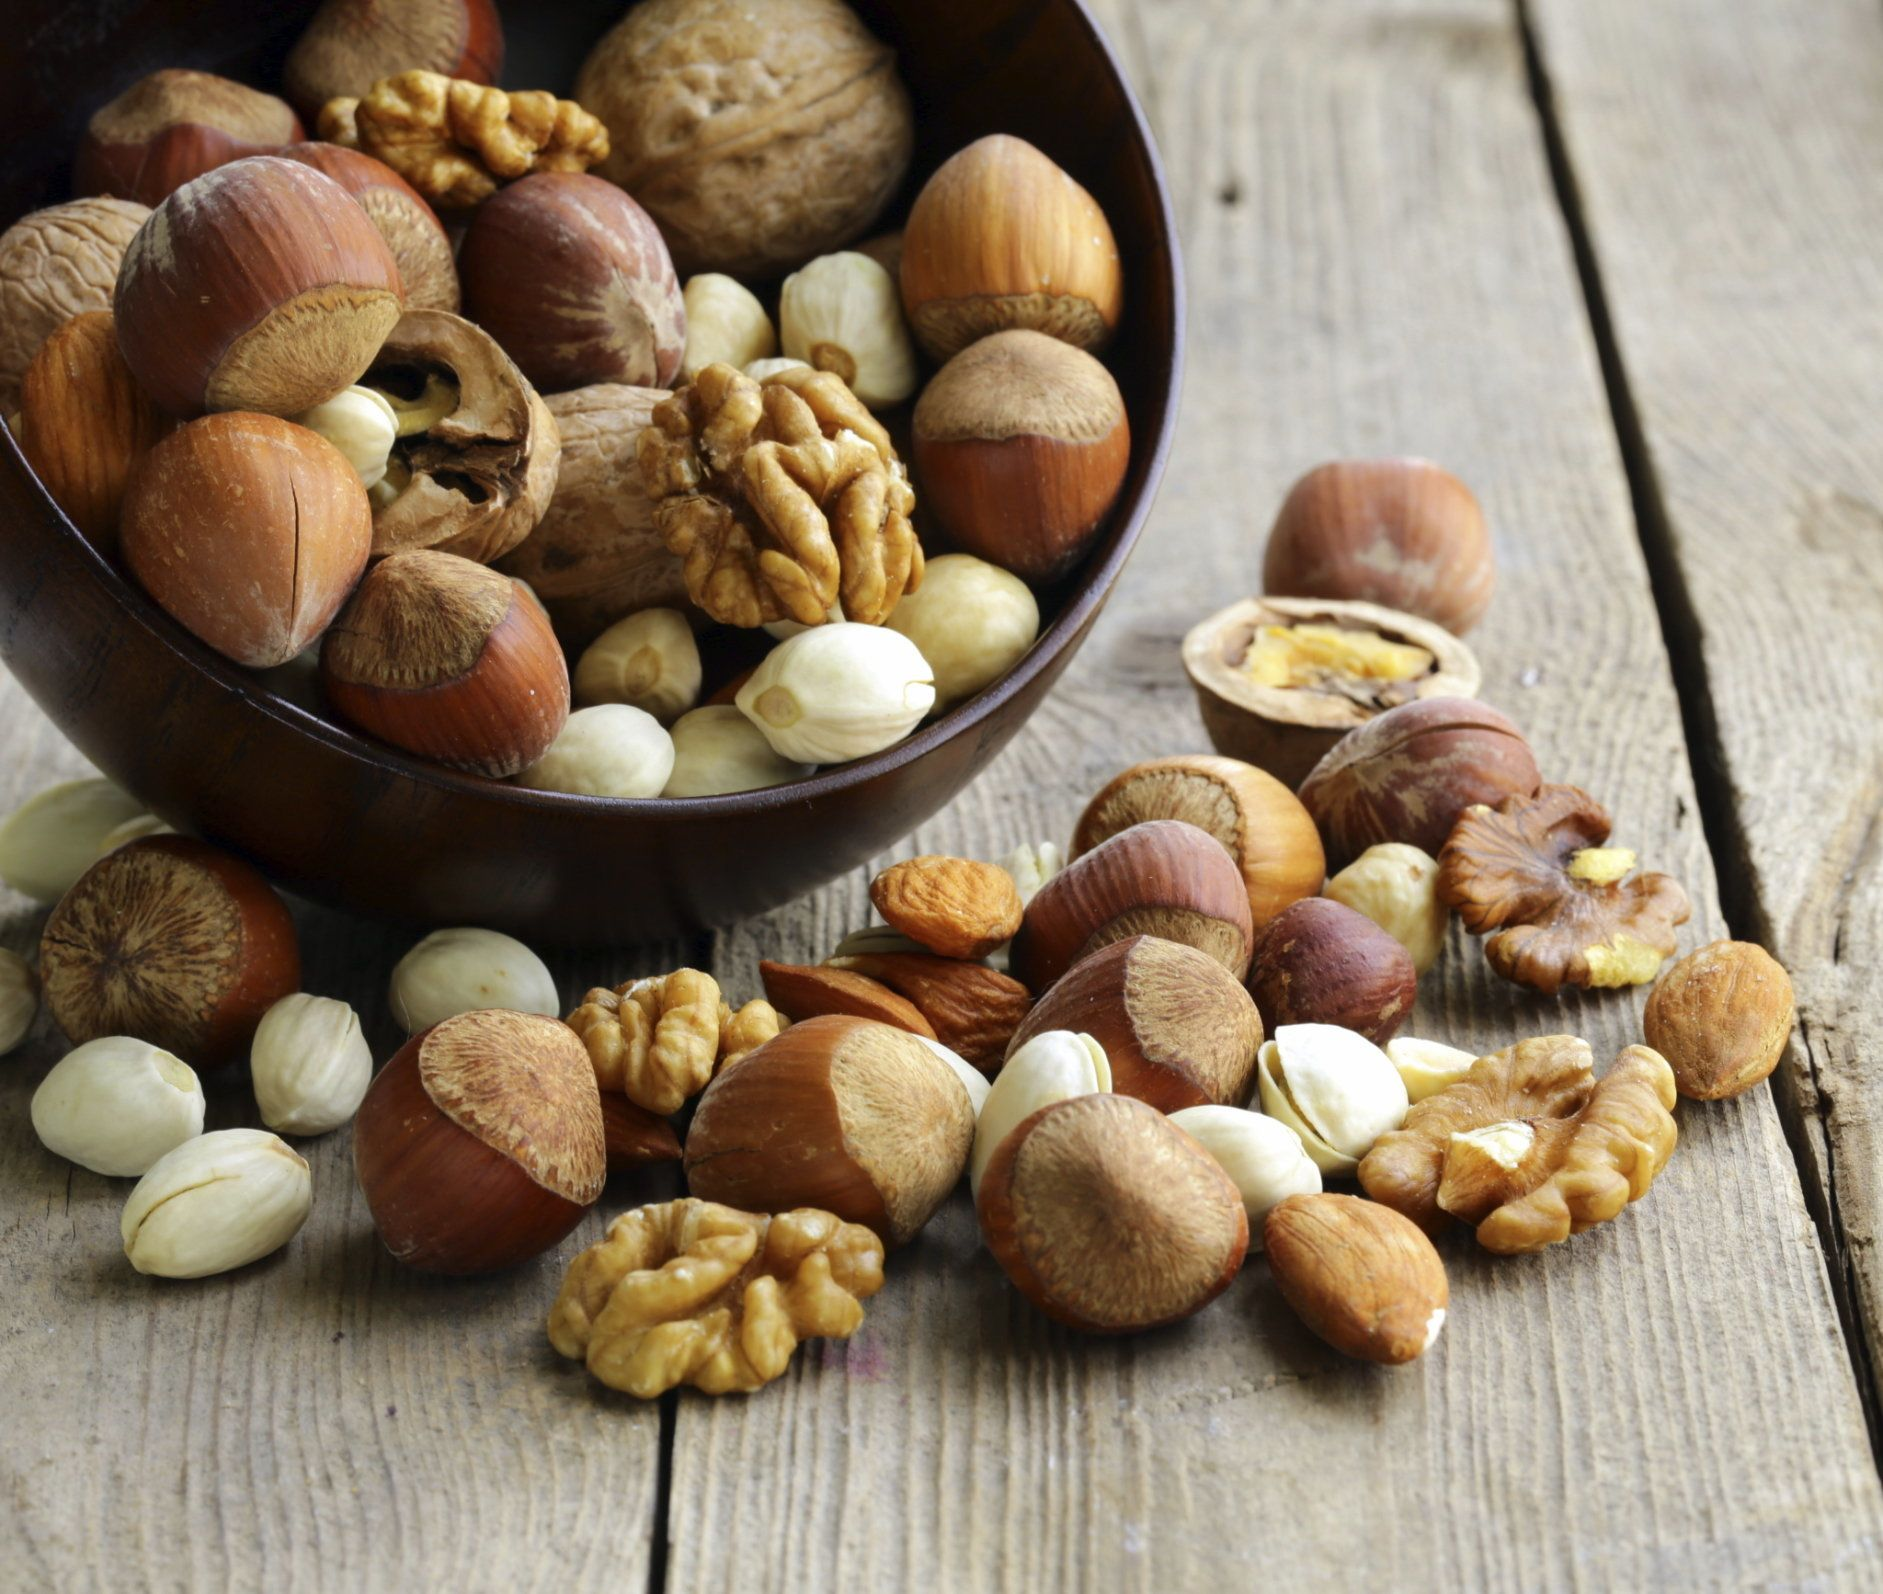 Prostate Cancer Patients May Cut Their Risk Of Death By Eating Nuts, Study